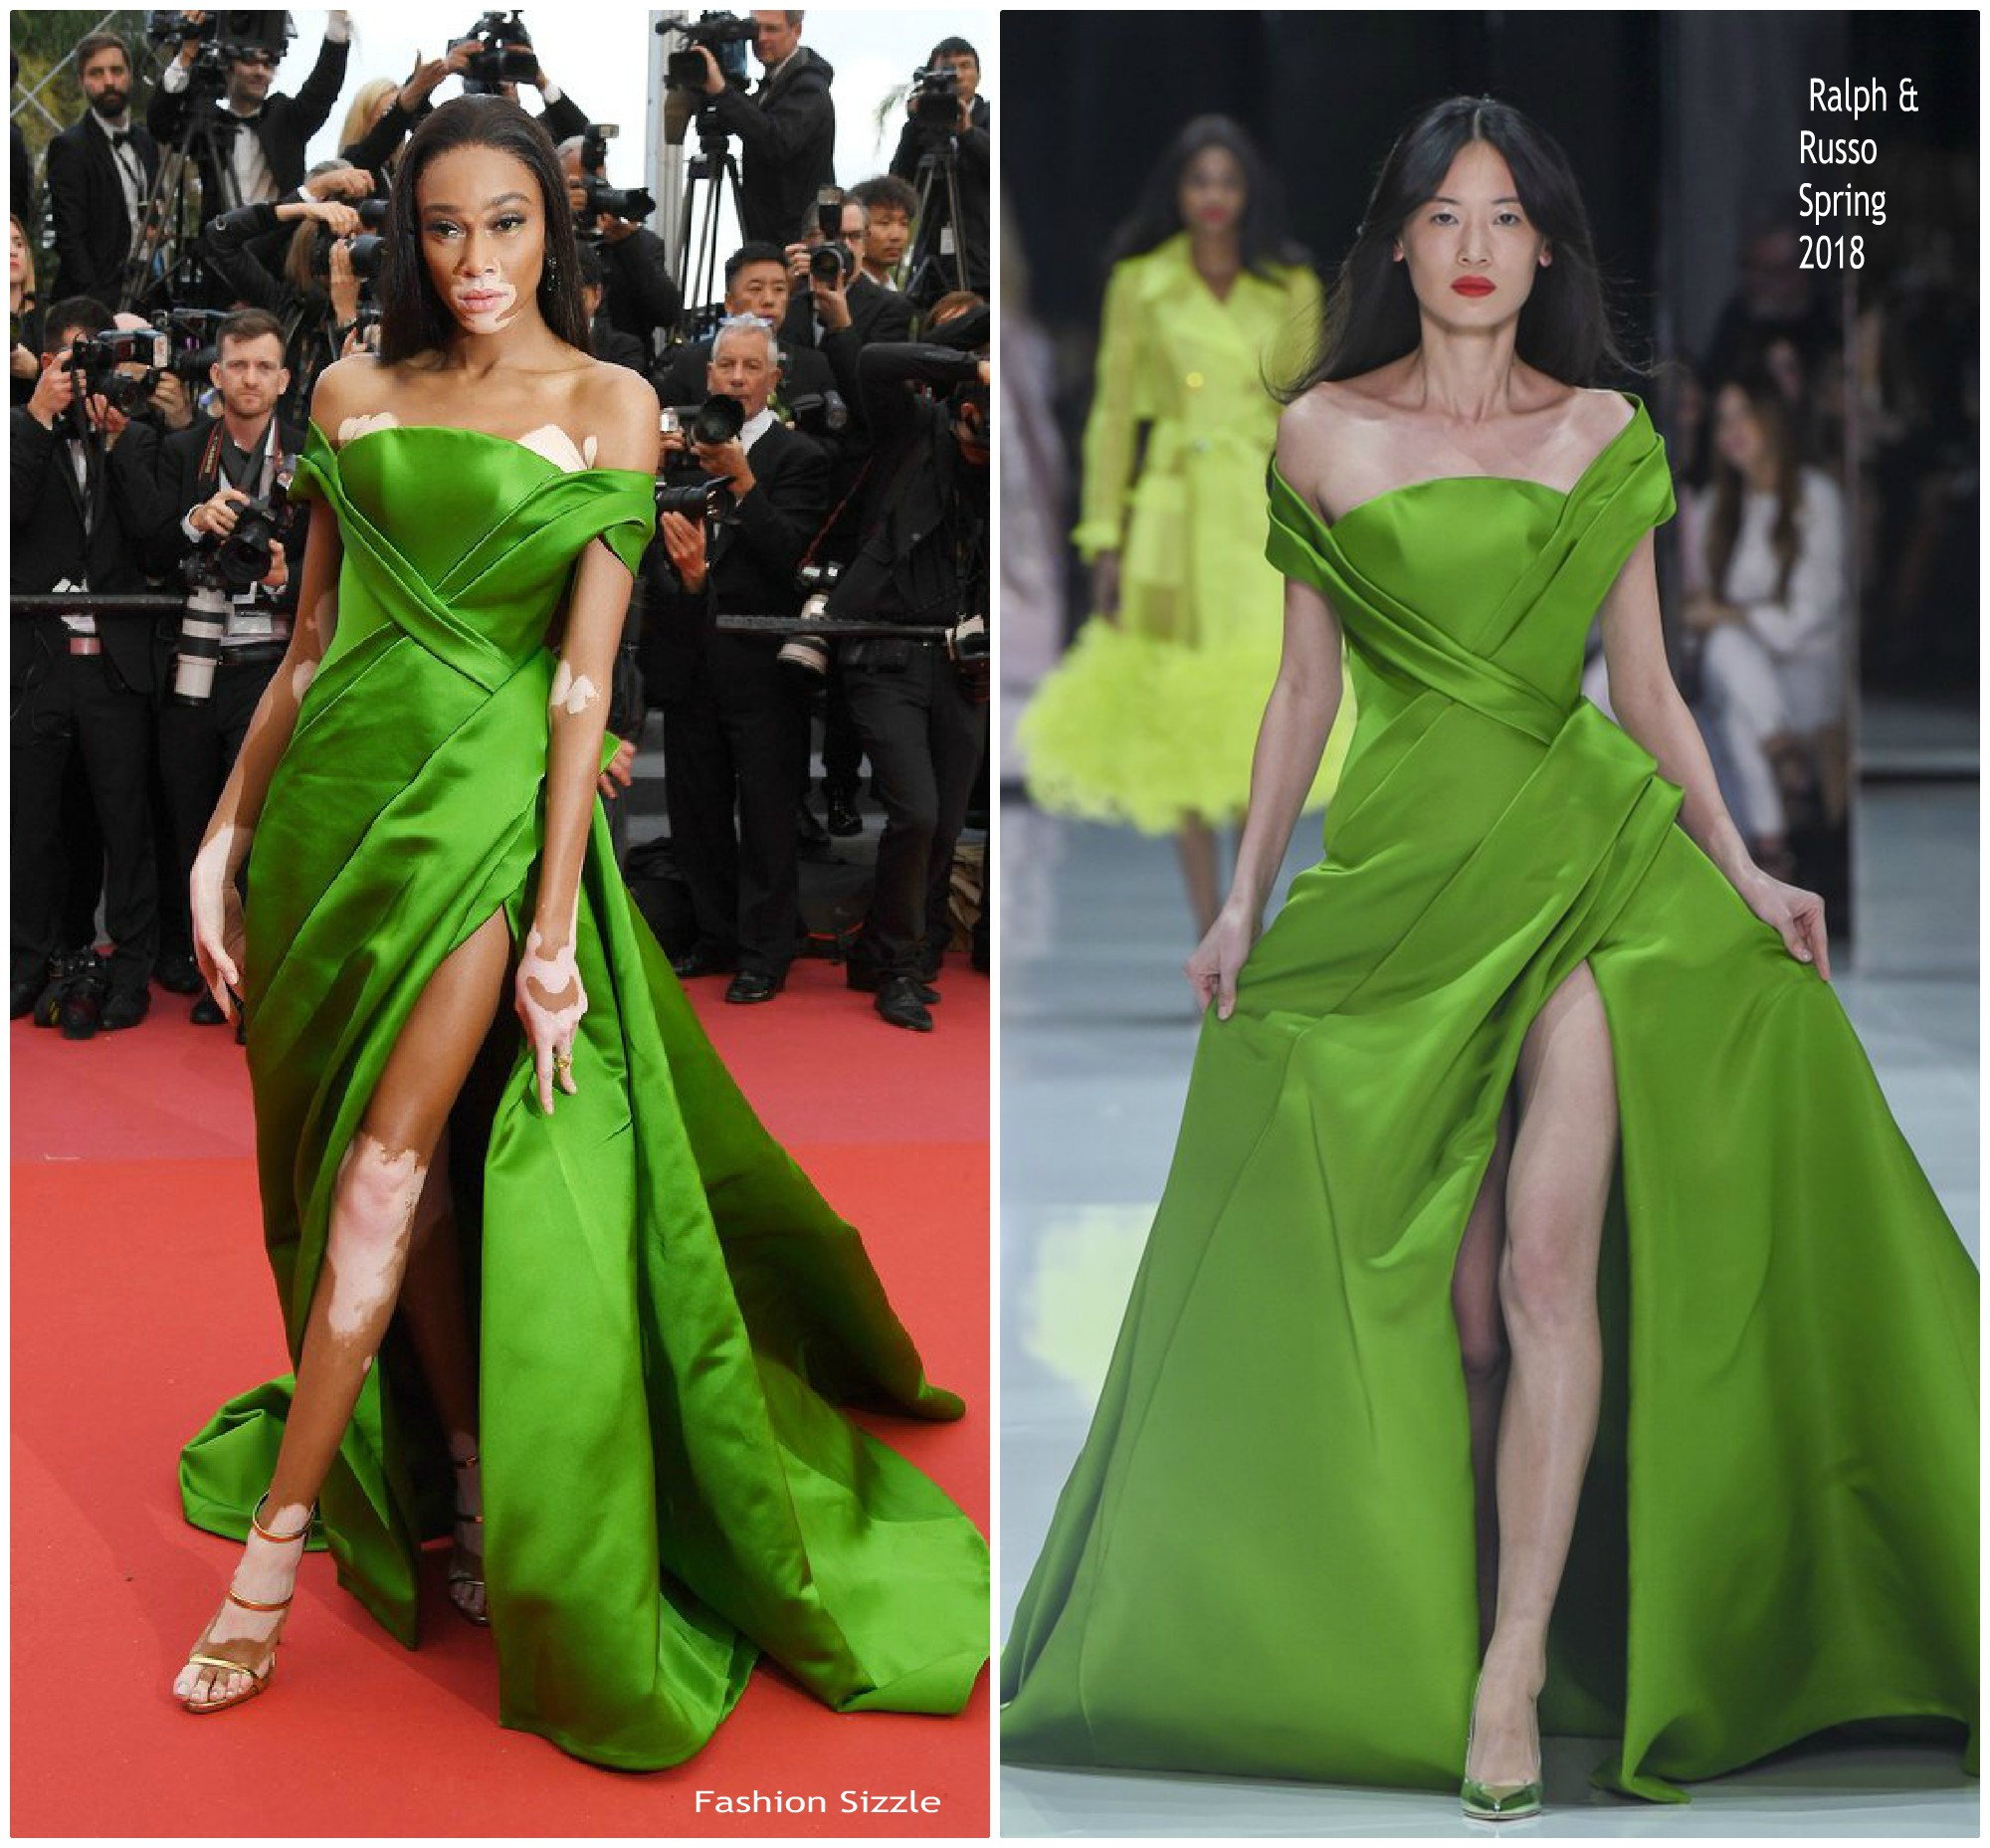 winnie-harlow-in-ralph-russo-haute-couture-blackkklansman-cannes-film-festival-premiere